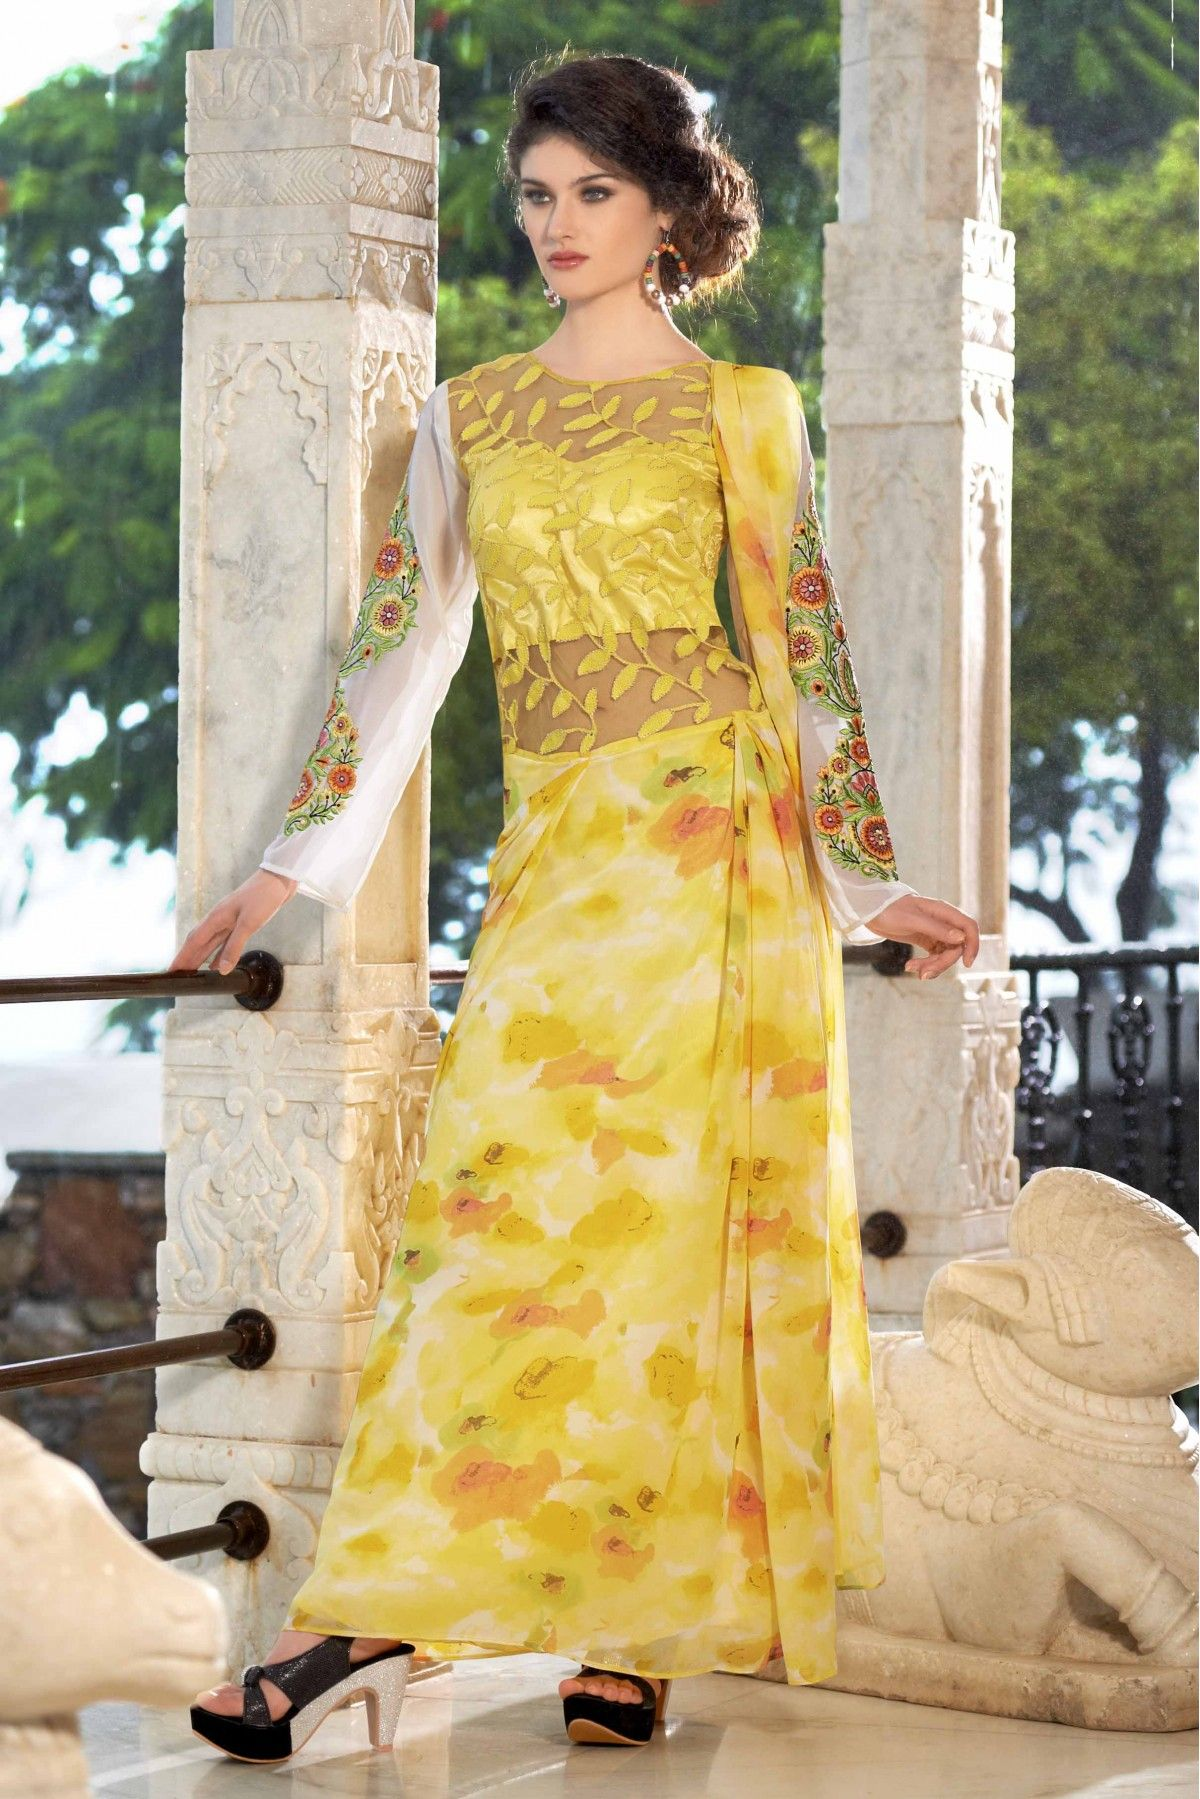 d28ef76028f4 Yellow Colour Georgette Fabric Designer Semi Stitched Flower Printed Gown  Comes With Matching Dupatta. This